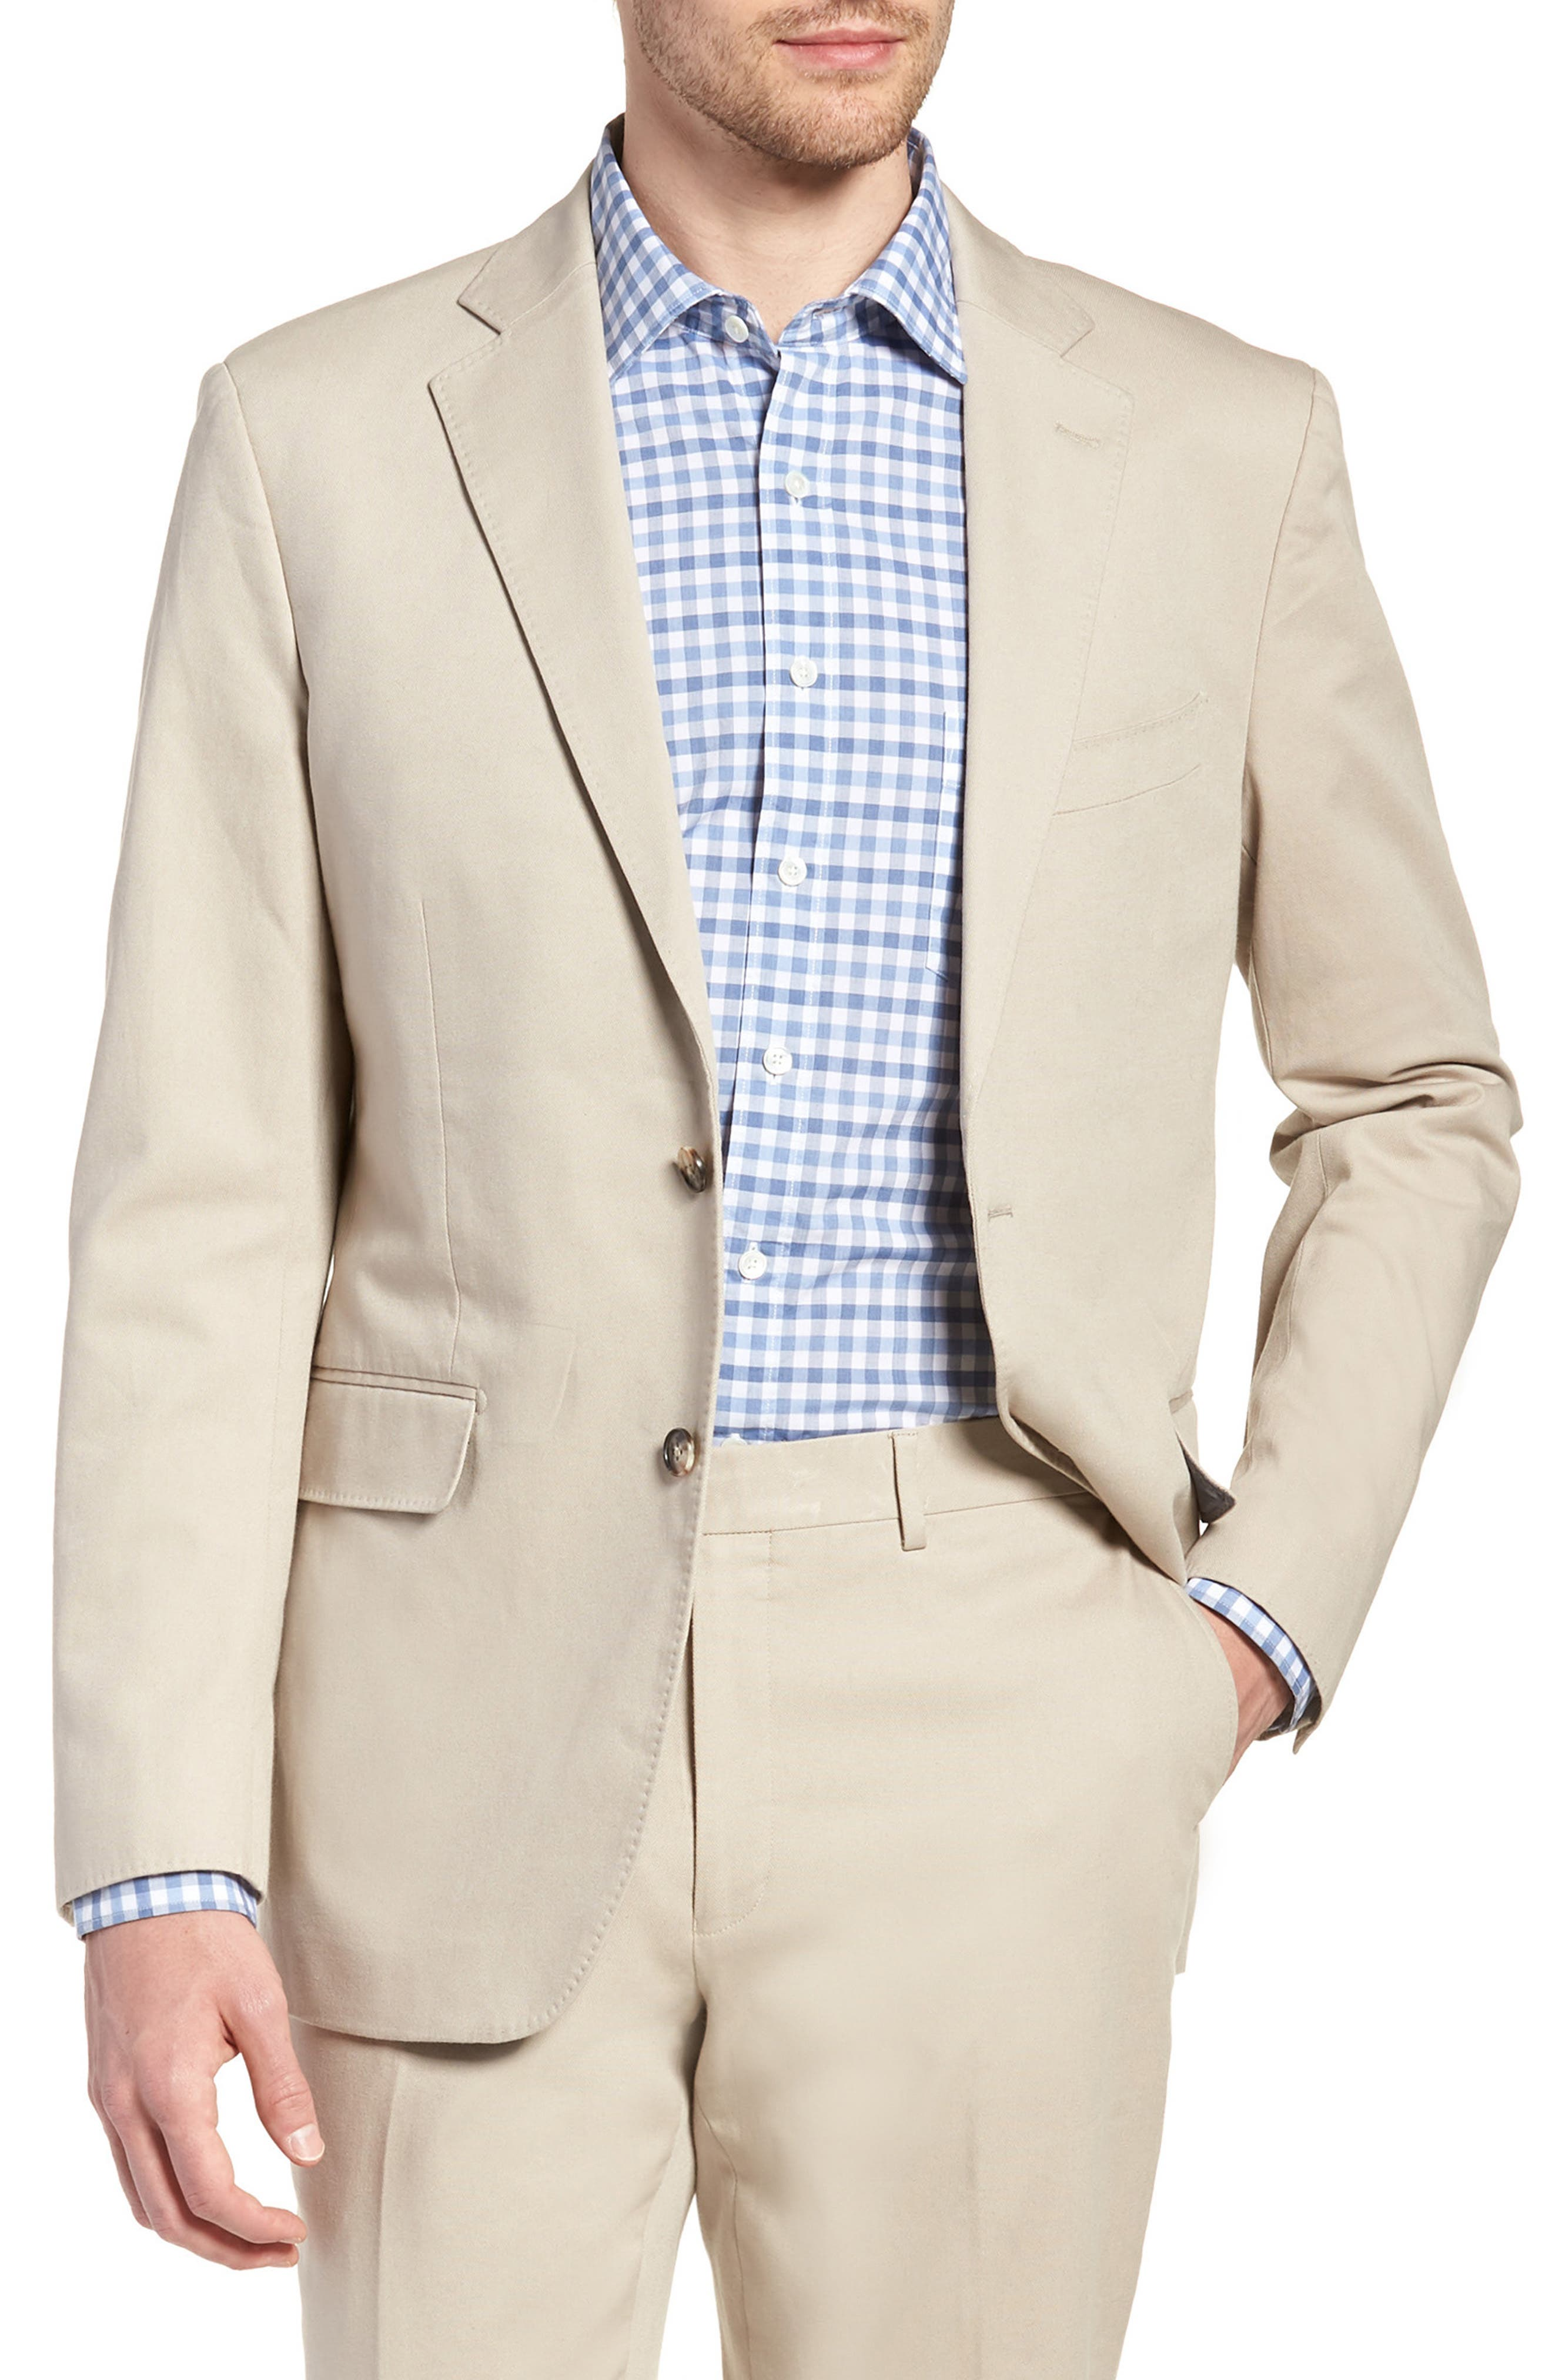 Finchley Regular Fit Sportcoat,                             Main thumbnail 1, color,                             102